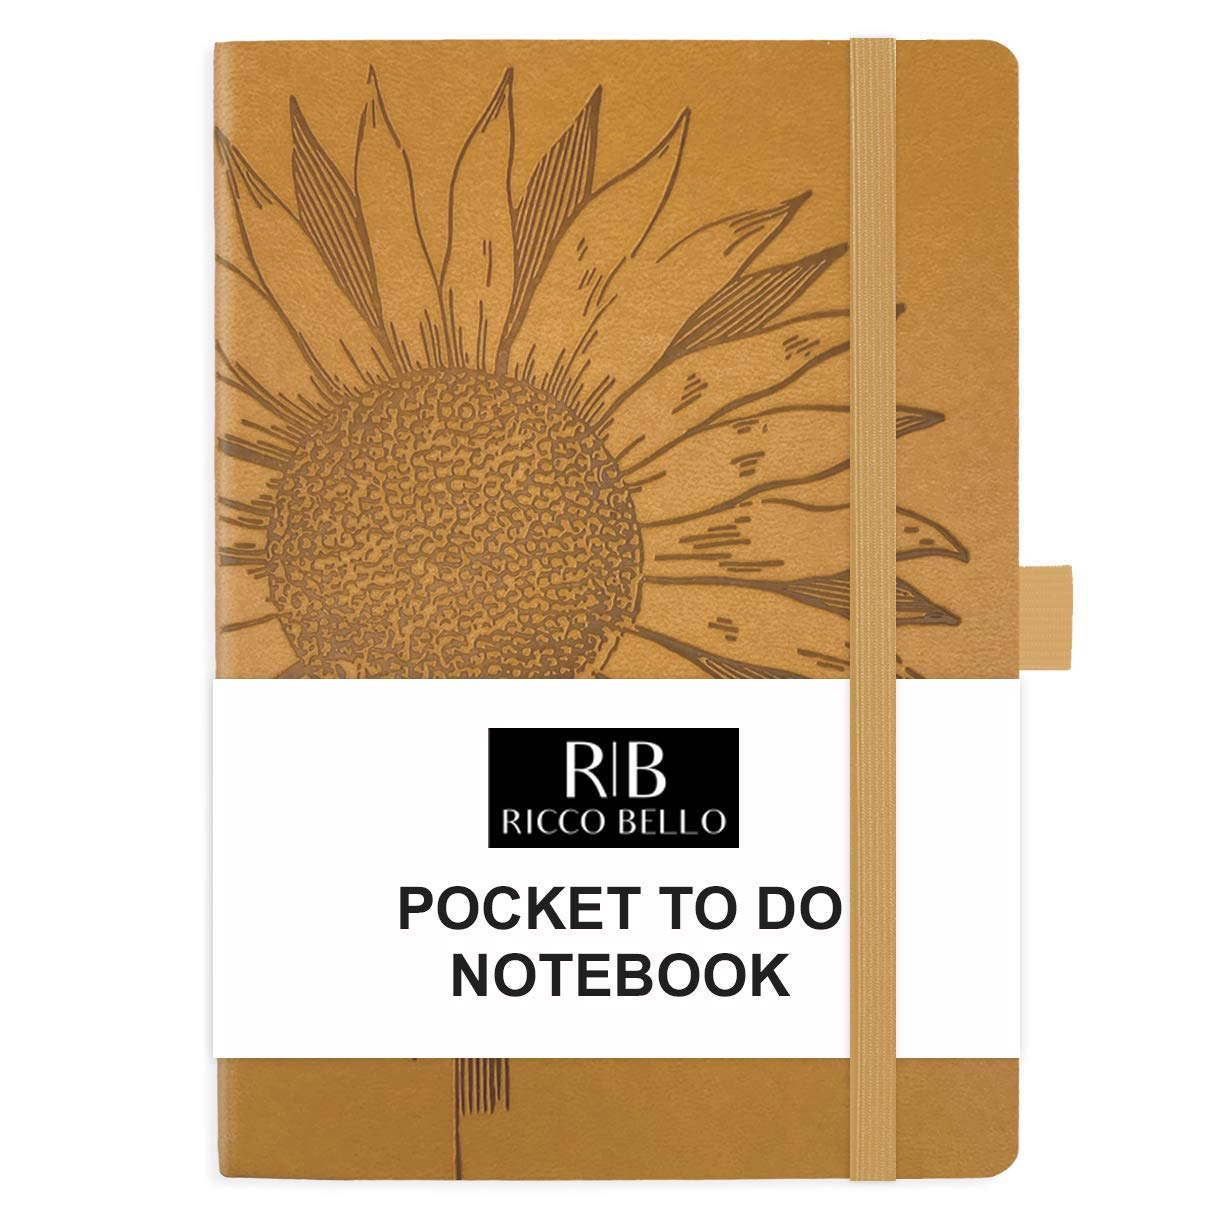 RICCO BELLO Small Hardcover Pocket to Do List Notebook, Elastic Band Closure, Pen Loop, Ribbon Bookmark, Vegan Leather, Storage Pocket, 4.25 x 6 inches (Sunflower)